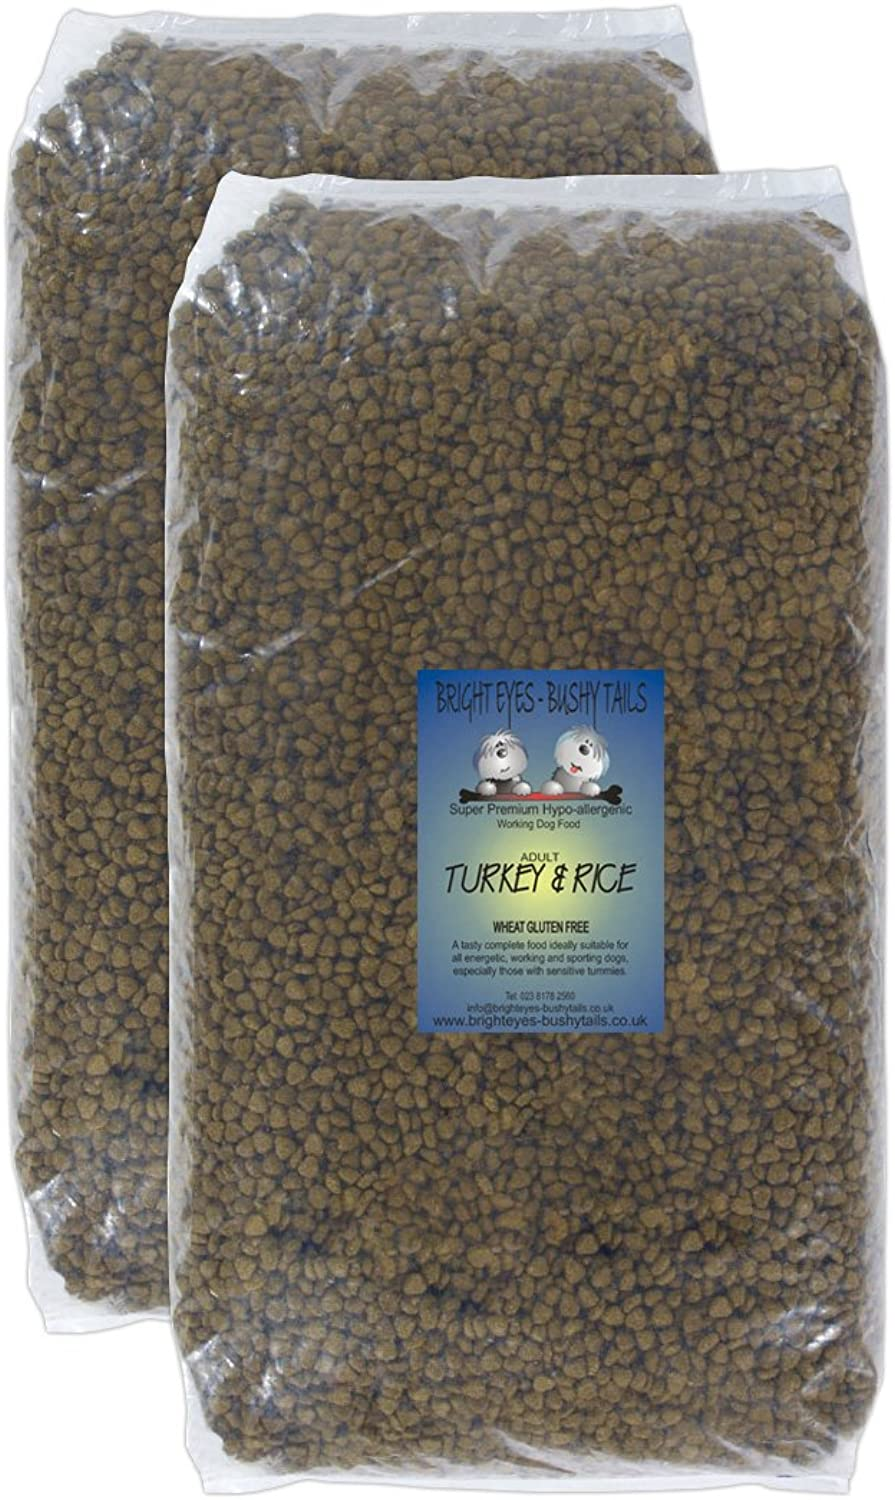 BEST Turkey & Rice Super Premium Hypoallergenic dog food from Bright Eyes  Bushy Tails. 2x15Kg bags. Wheat and wheat gluten free, no artificial flavours, colourants or preservatives. Yummy, fully balanced and complete. Easily digestible and gentle on all